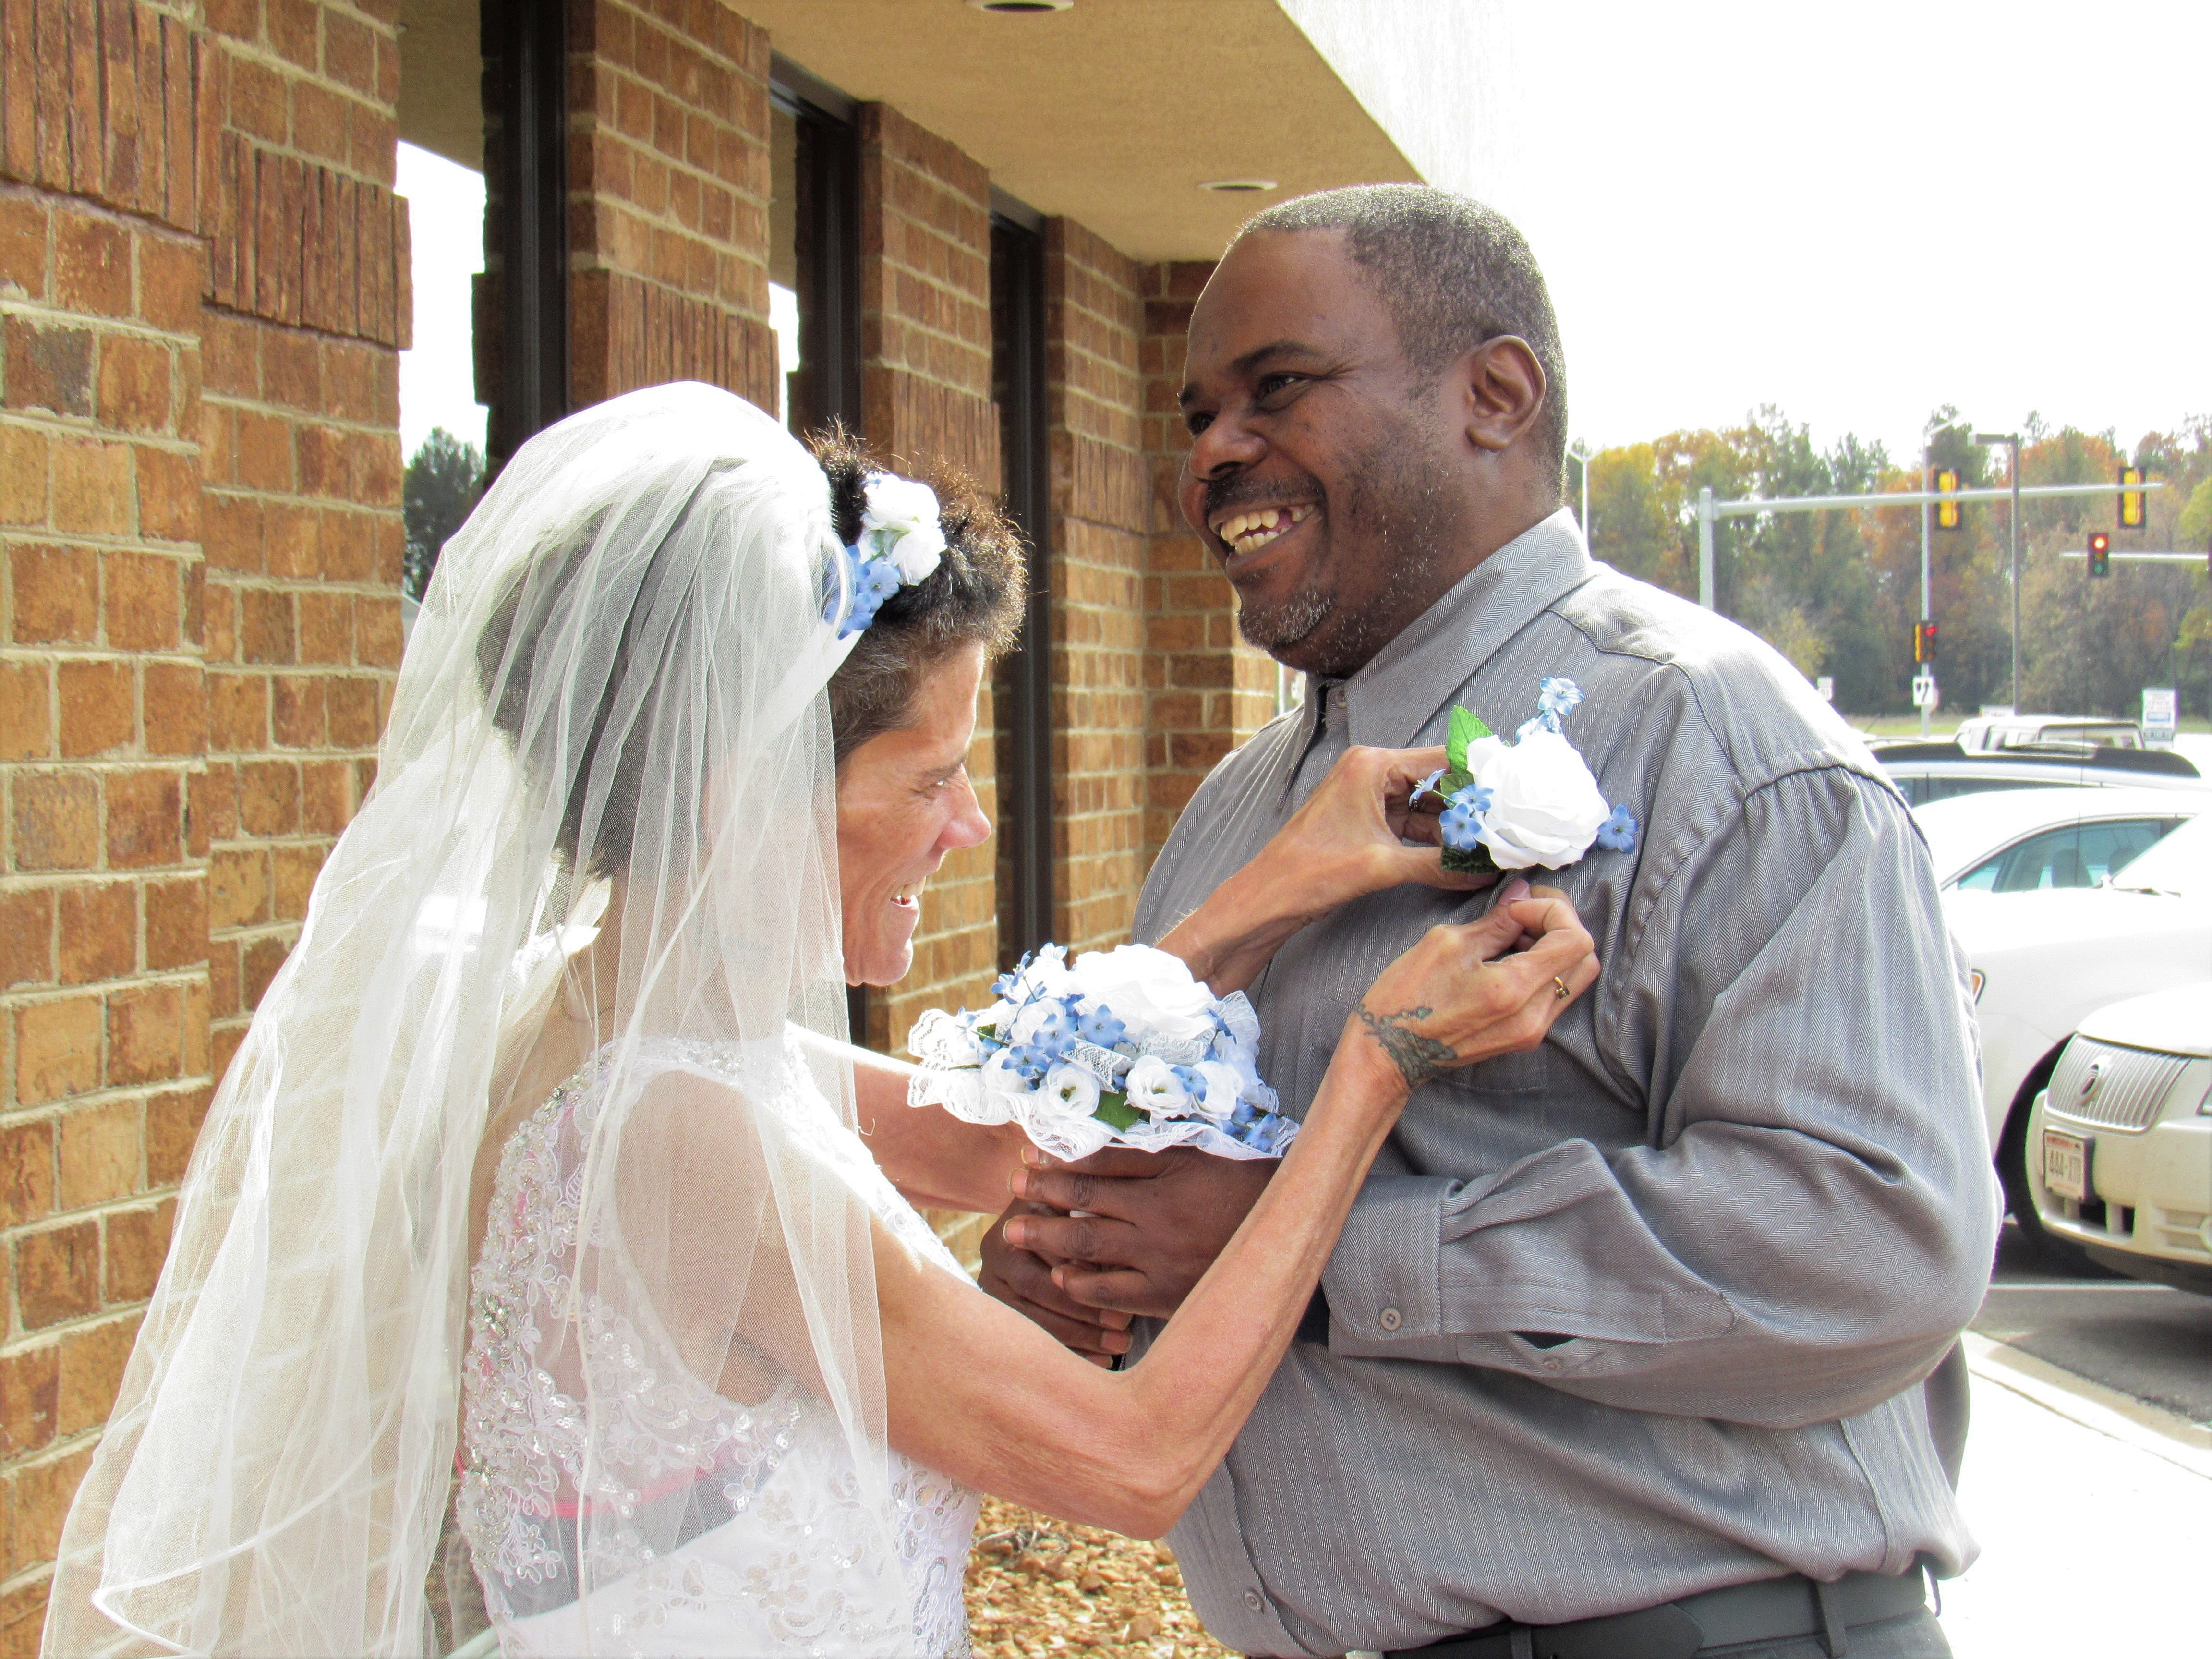 Lisa Fredrick adjusts Shawn Ivy's boutonniere after their wedding ceremony on Thursday, Oct. 25, 2018, outside the Ministry Home Care office in Plover.